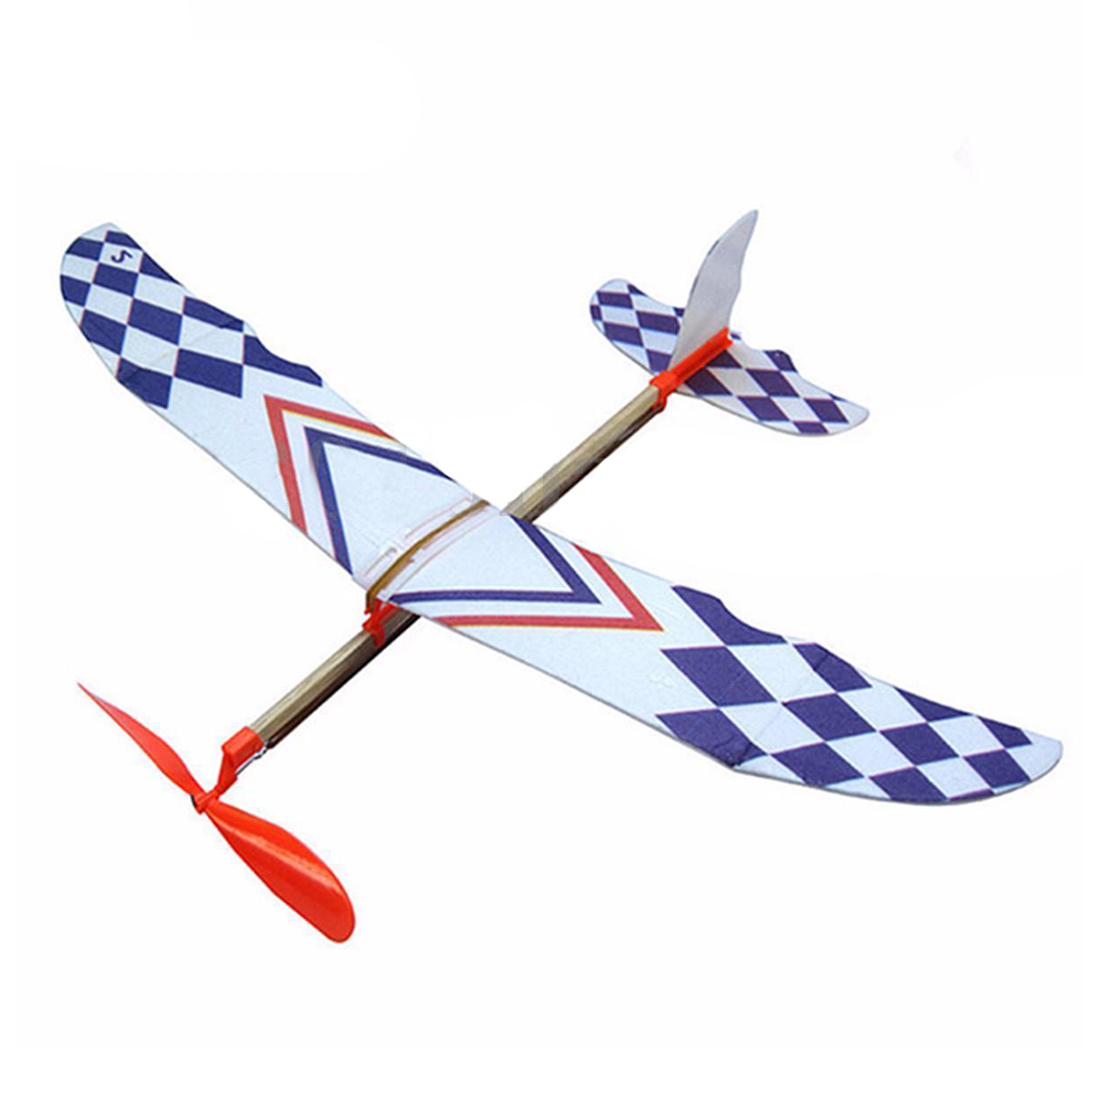 HOT SALE Elastic Rubber Band Powered DIY Foam Plane Model Kit Aircraft Educational Toy цена